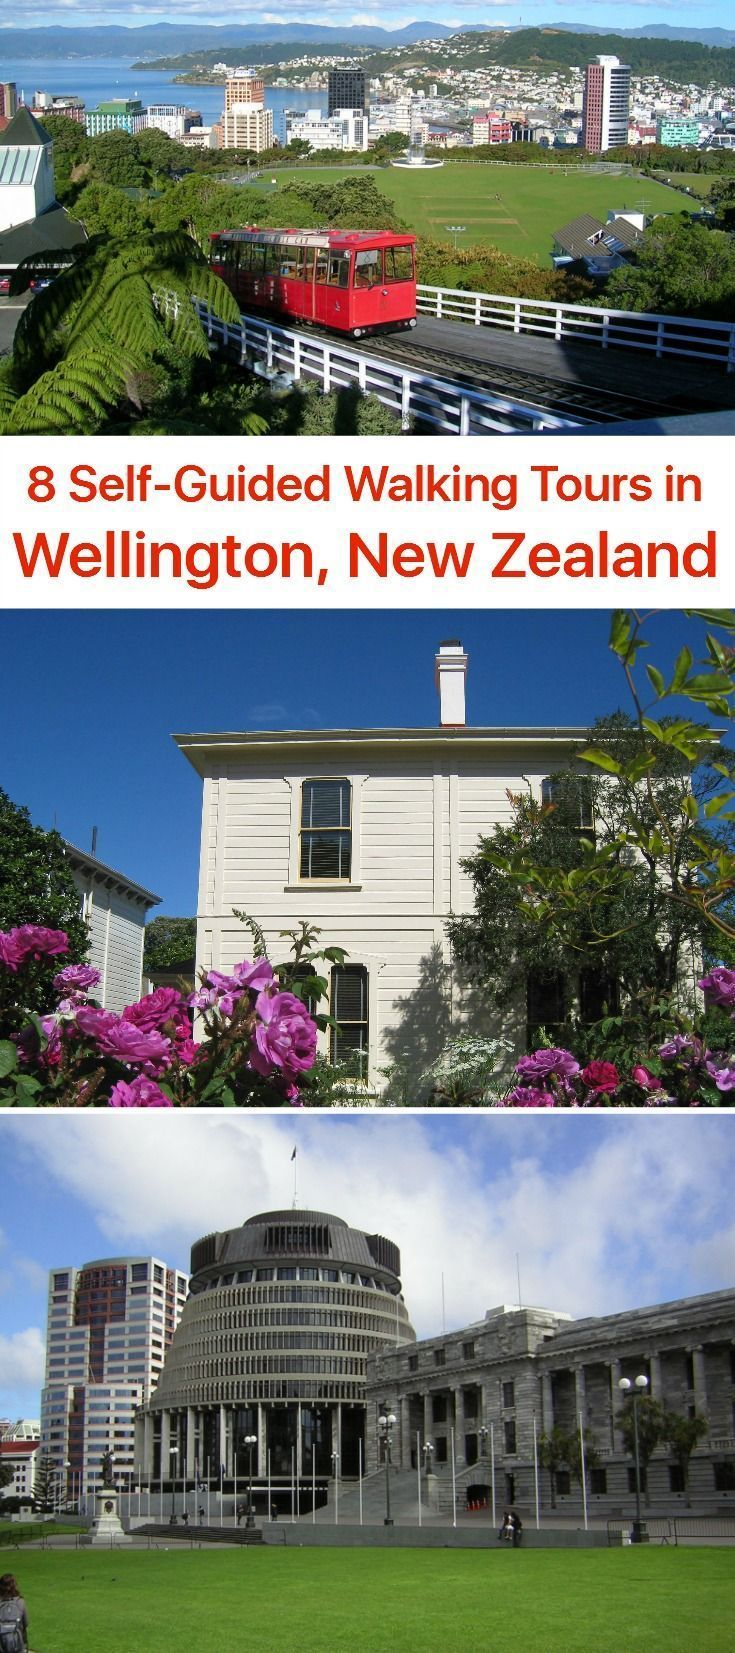 """Some refer to Wellington as an """"emerald city,"""" others say it's """"windy.""""  Both references are true, as the capital of New Zealand is located near the green-clad North Island's southernmost tip, overlooking the Cook Strait - rather windy in winter.  Compact city as such, Wellington dwells in a comfy atmosphere attained through combination of neat sandy beaches and nice-looking wooden houses sitting on the hills surrounding the harbour."""